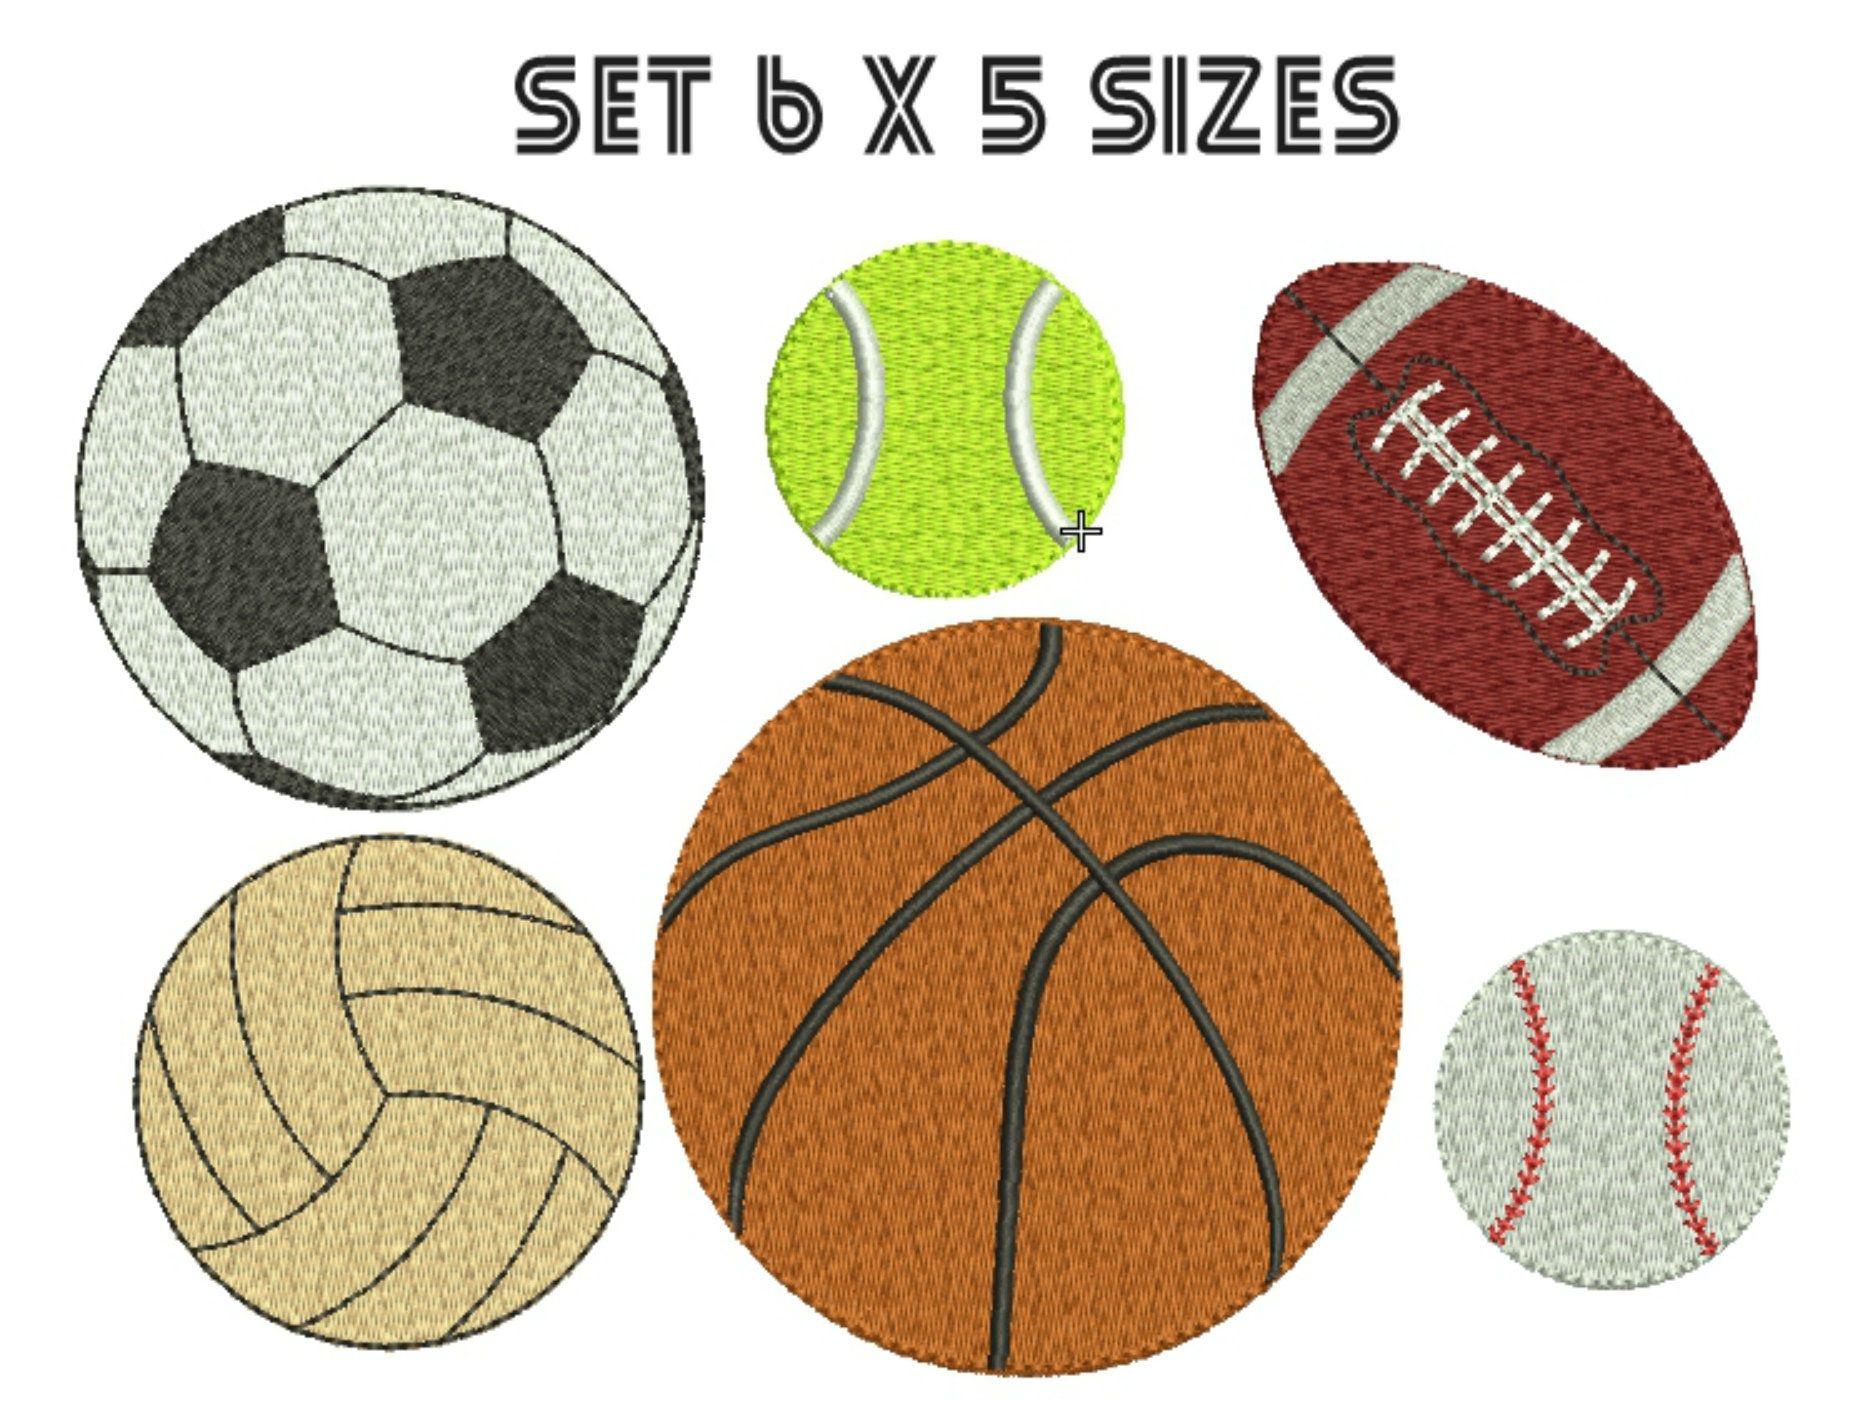 Volleyball Embroidery Design Basketball Sport Soccer Ball Etsy Embroidery Designs Machine Embroidery Designs Machine Embroidery